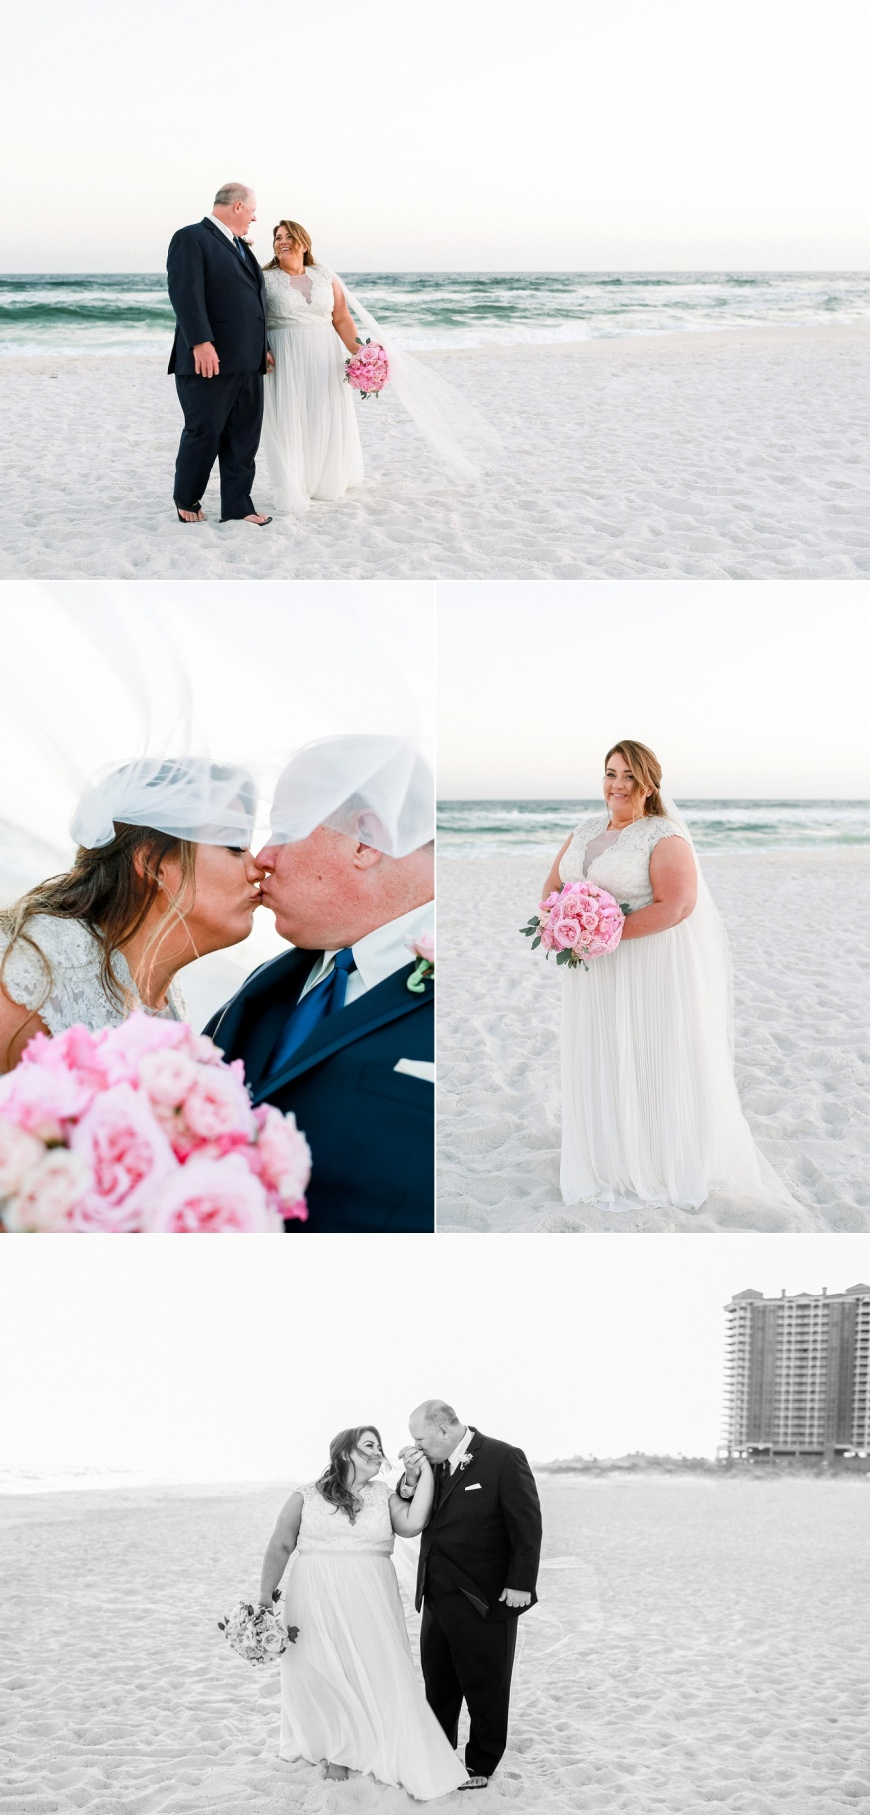 Portofino-Island-Resort-Pensacola-Beach-Wedding-Photographer_1045.jpg